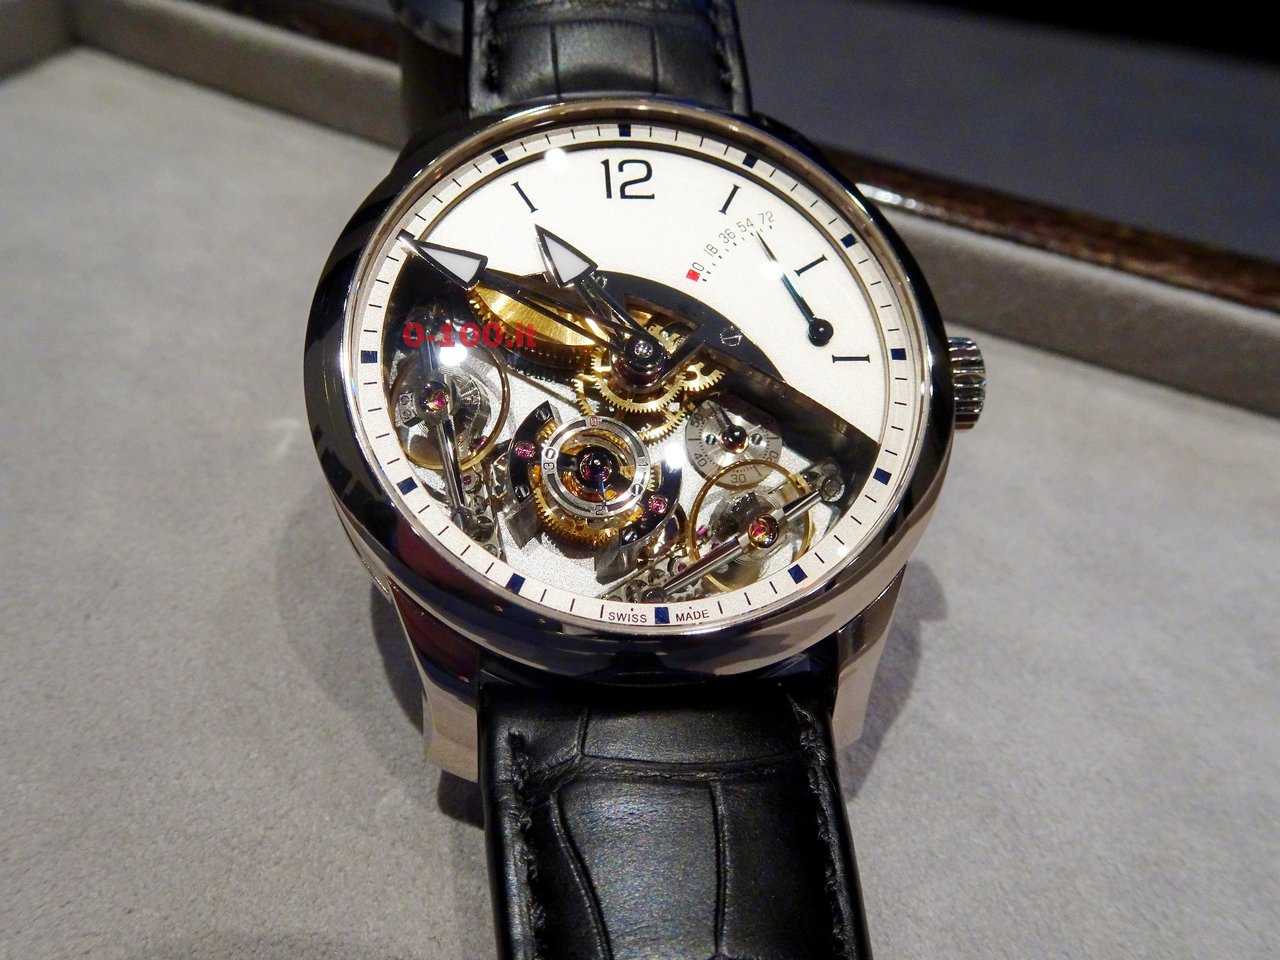 greubel-forsey-sihh-2016-0-100_110